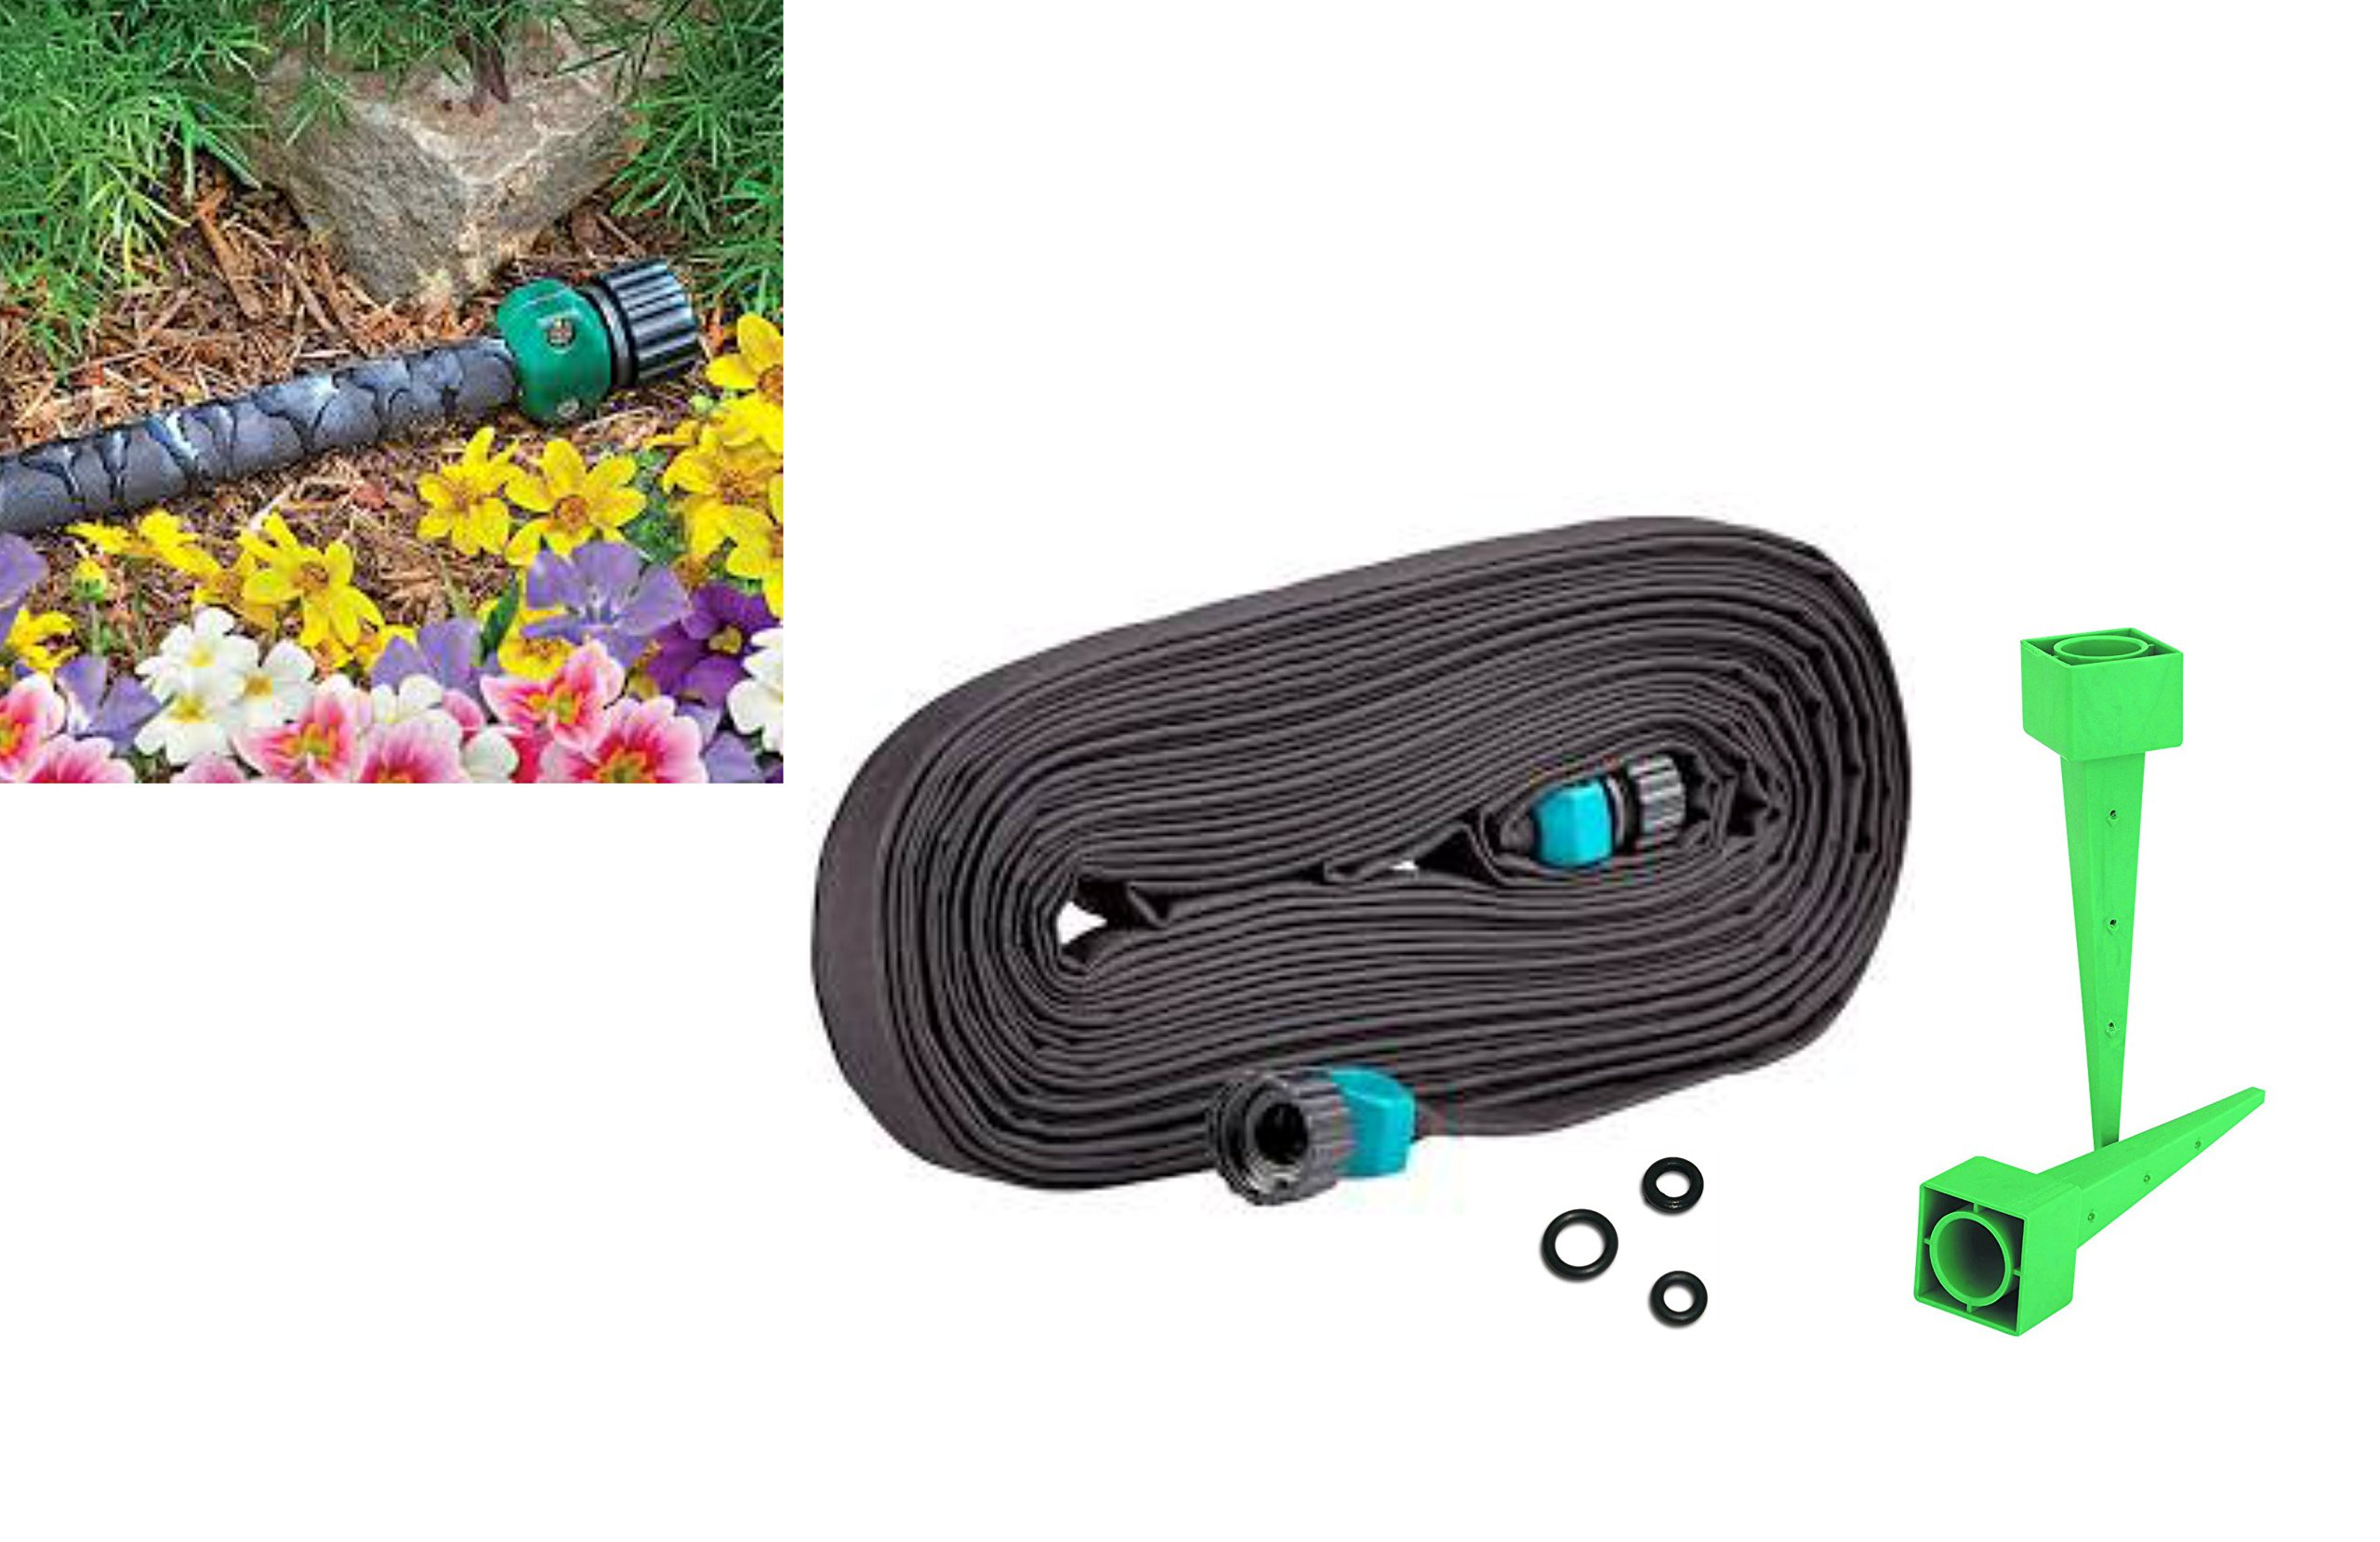 Super Grow Lawn Garden and Flower Bed Kit- 50 Feet soaker Supreme Flat 3/4 water Hose with 3 water flow control discs and 2 watering cones